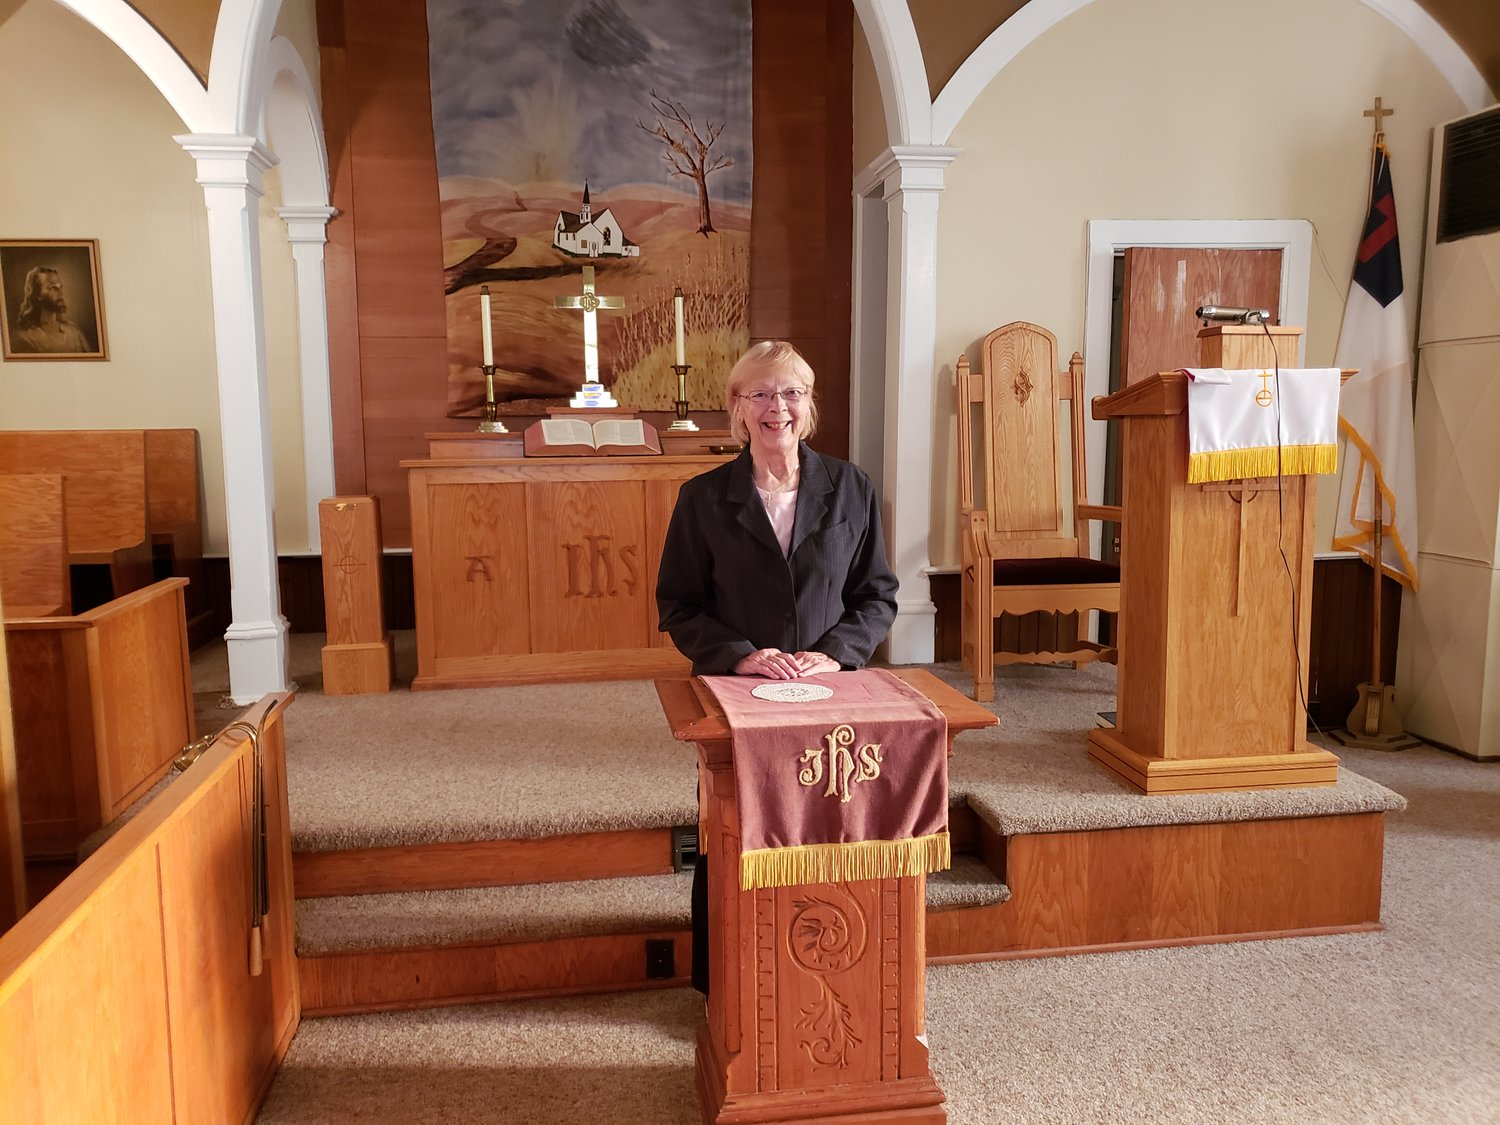 Rev. Marjie Brewton, in her twentieth year serving as the congregation's pastor, stands behind the original church pulpit.  The congregation is also in possession of a star quilt constructed by the mother of James Erwin Hollister.